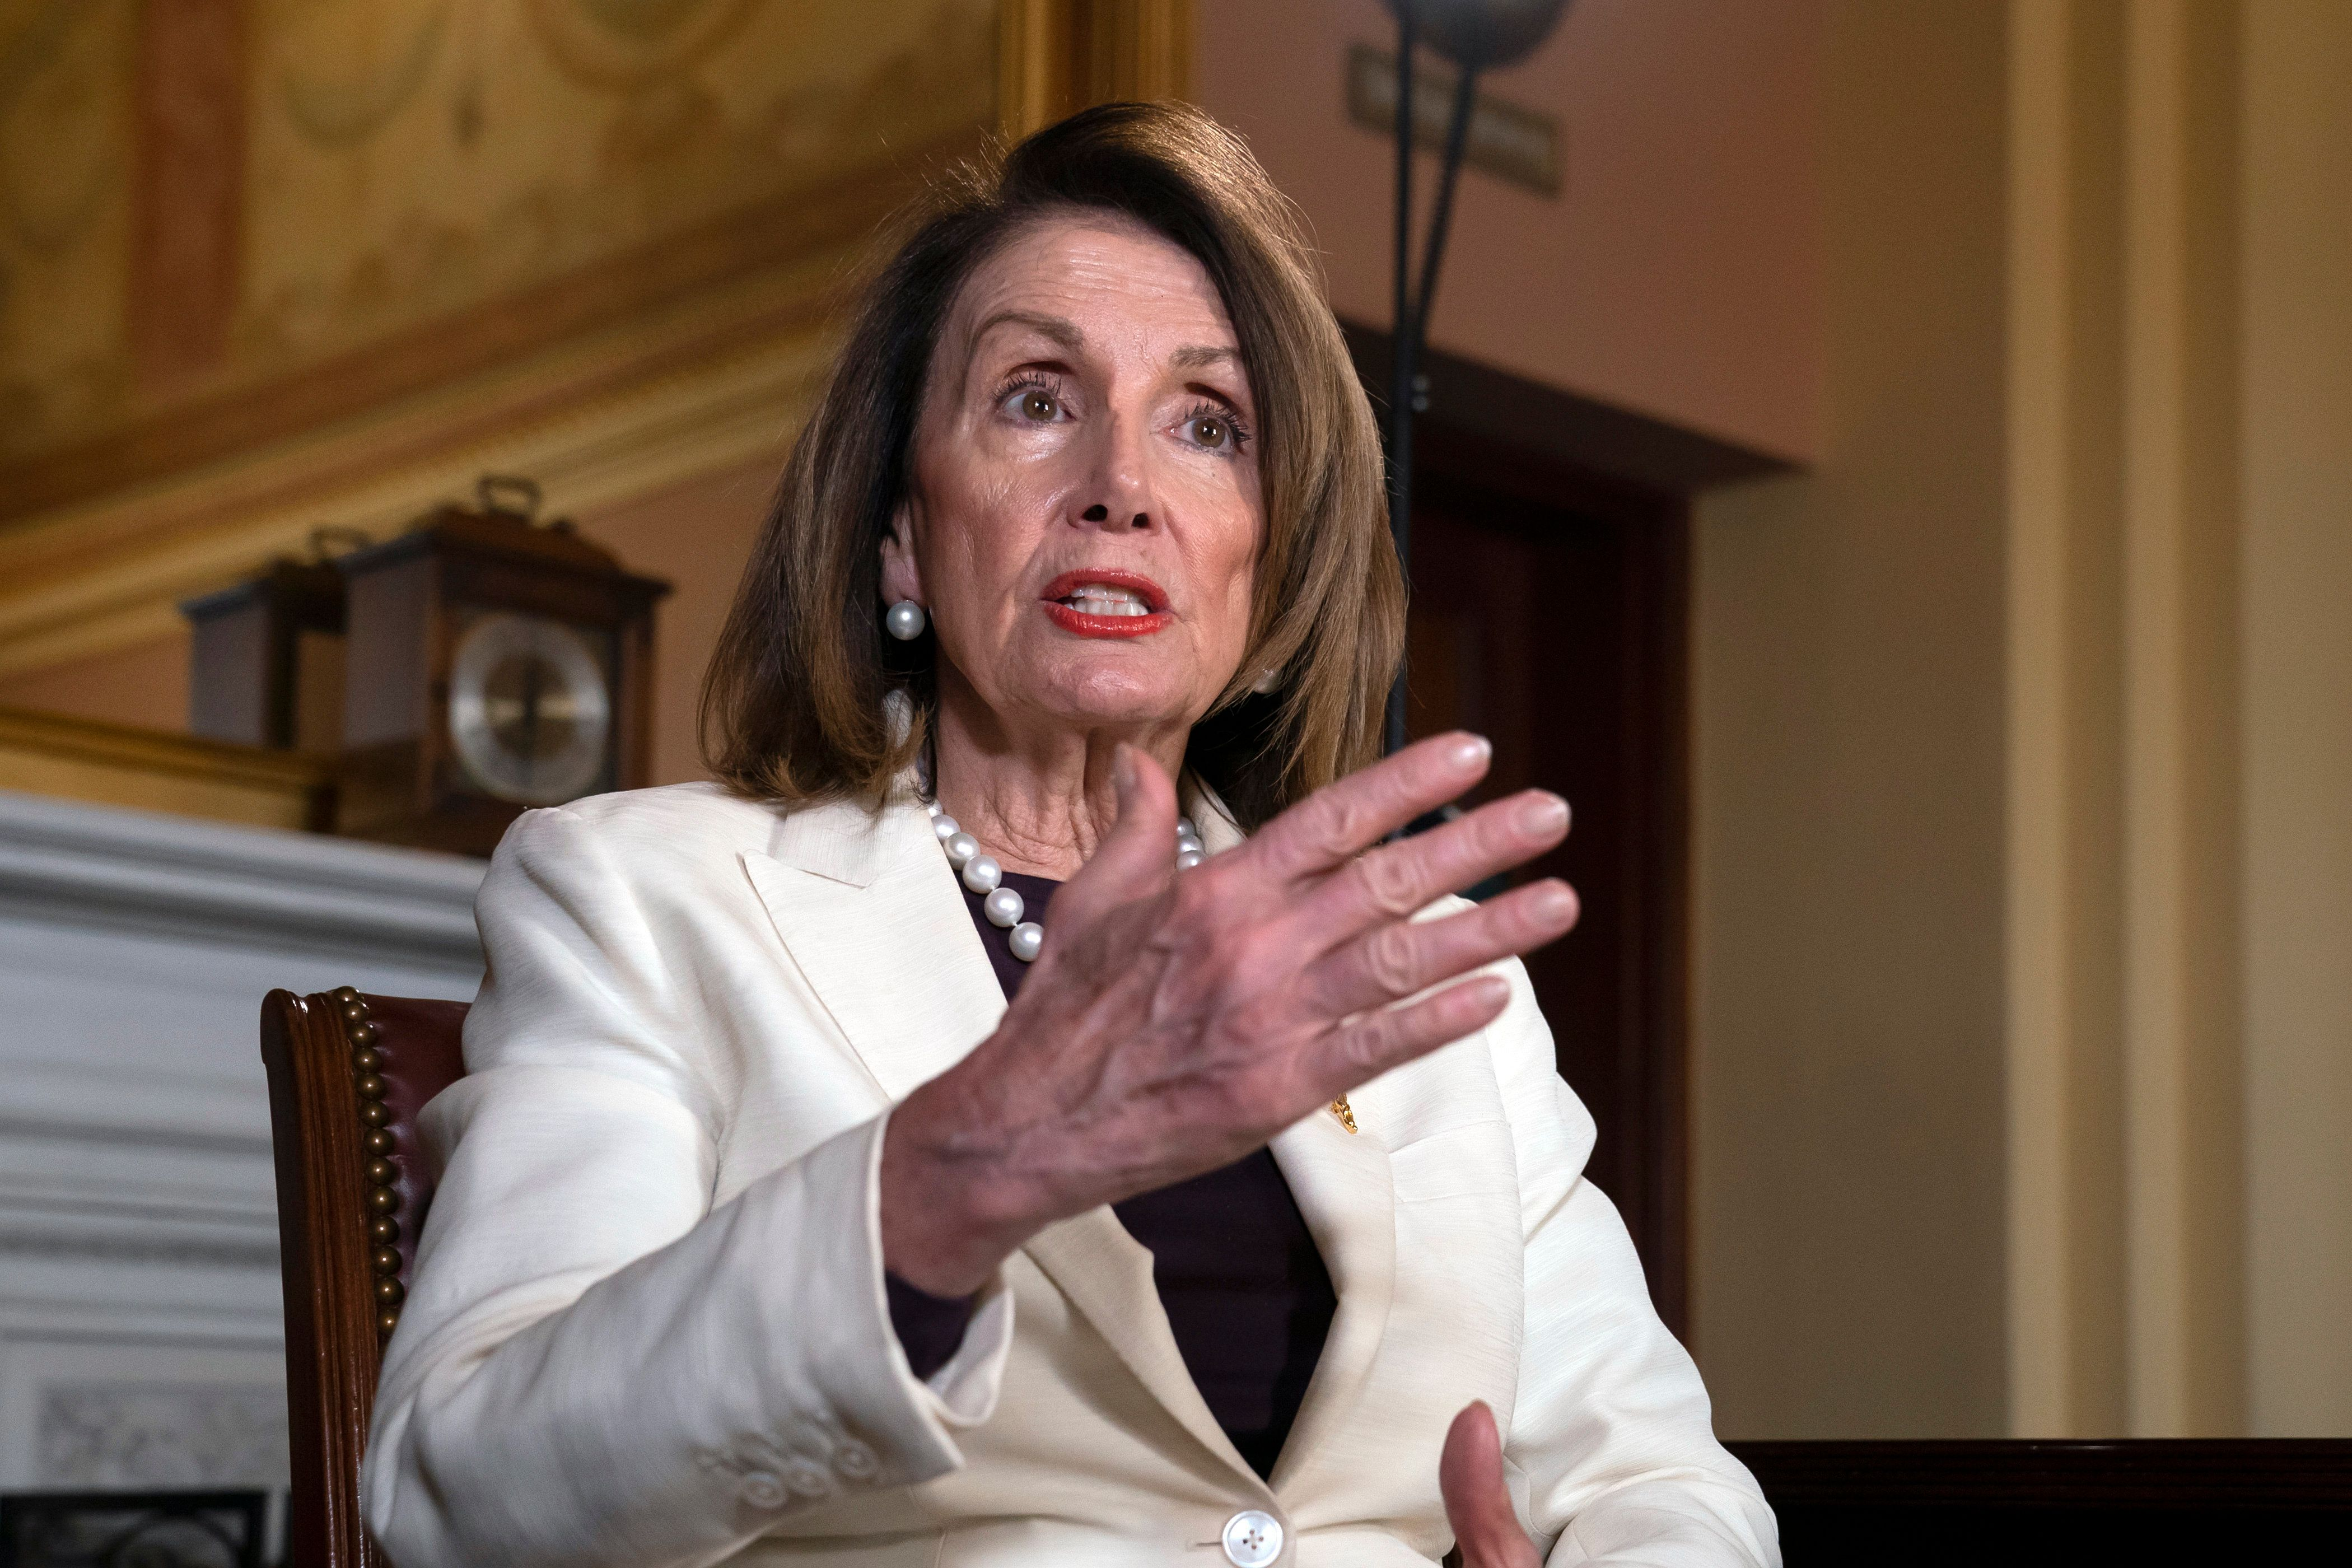 Nancy Pelosi: Trump's 'Hateful' Comments About Rep. Ilhan Omar Pose 'Real Danger'